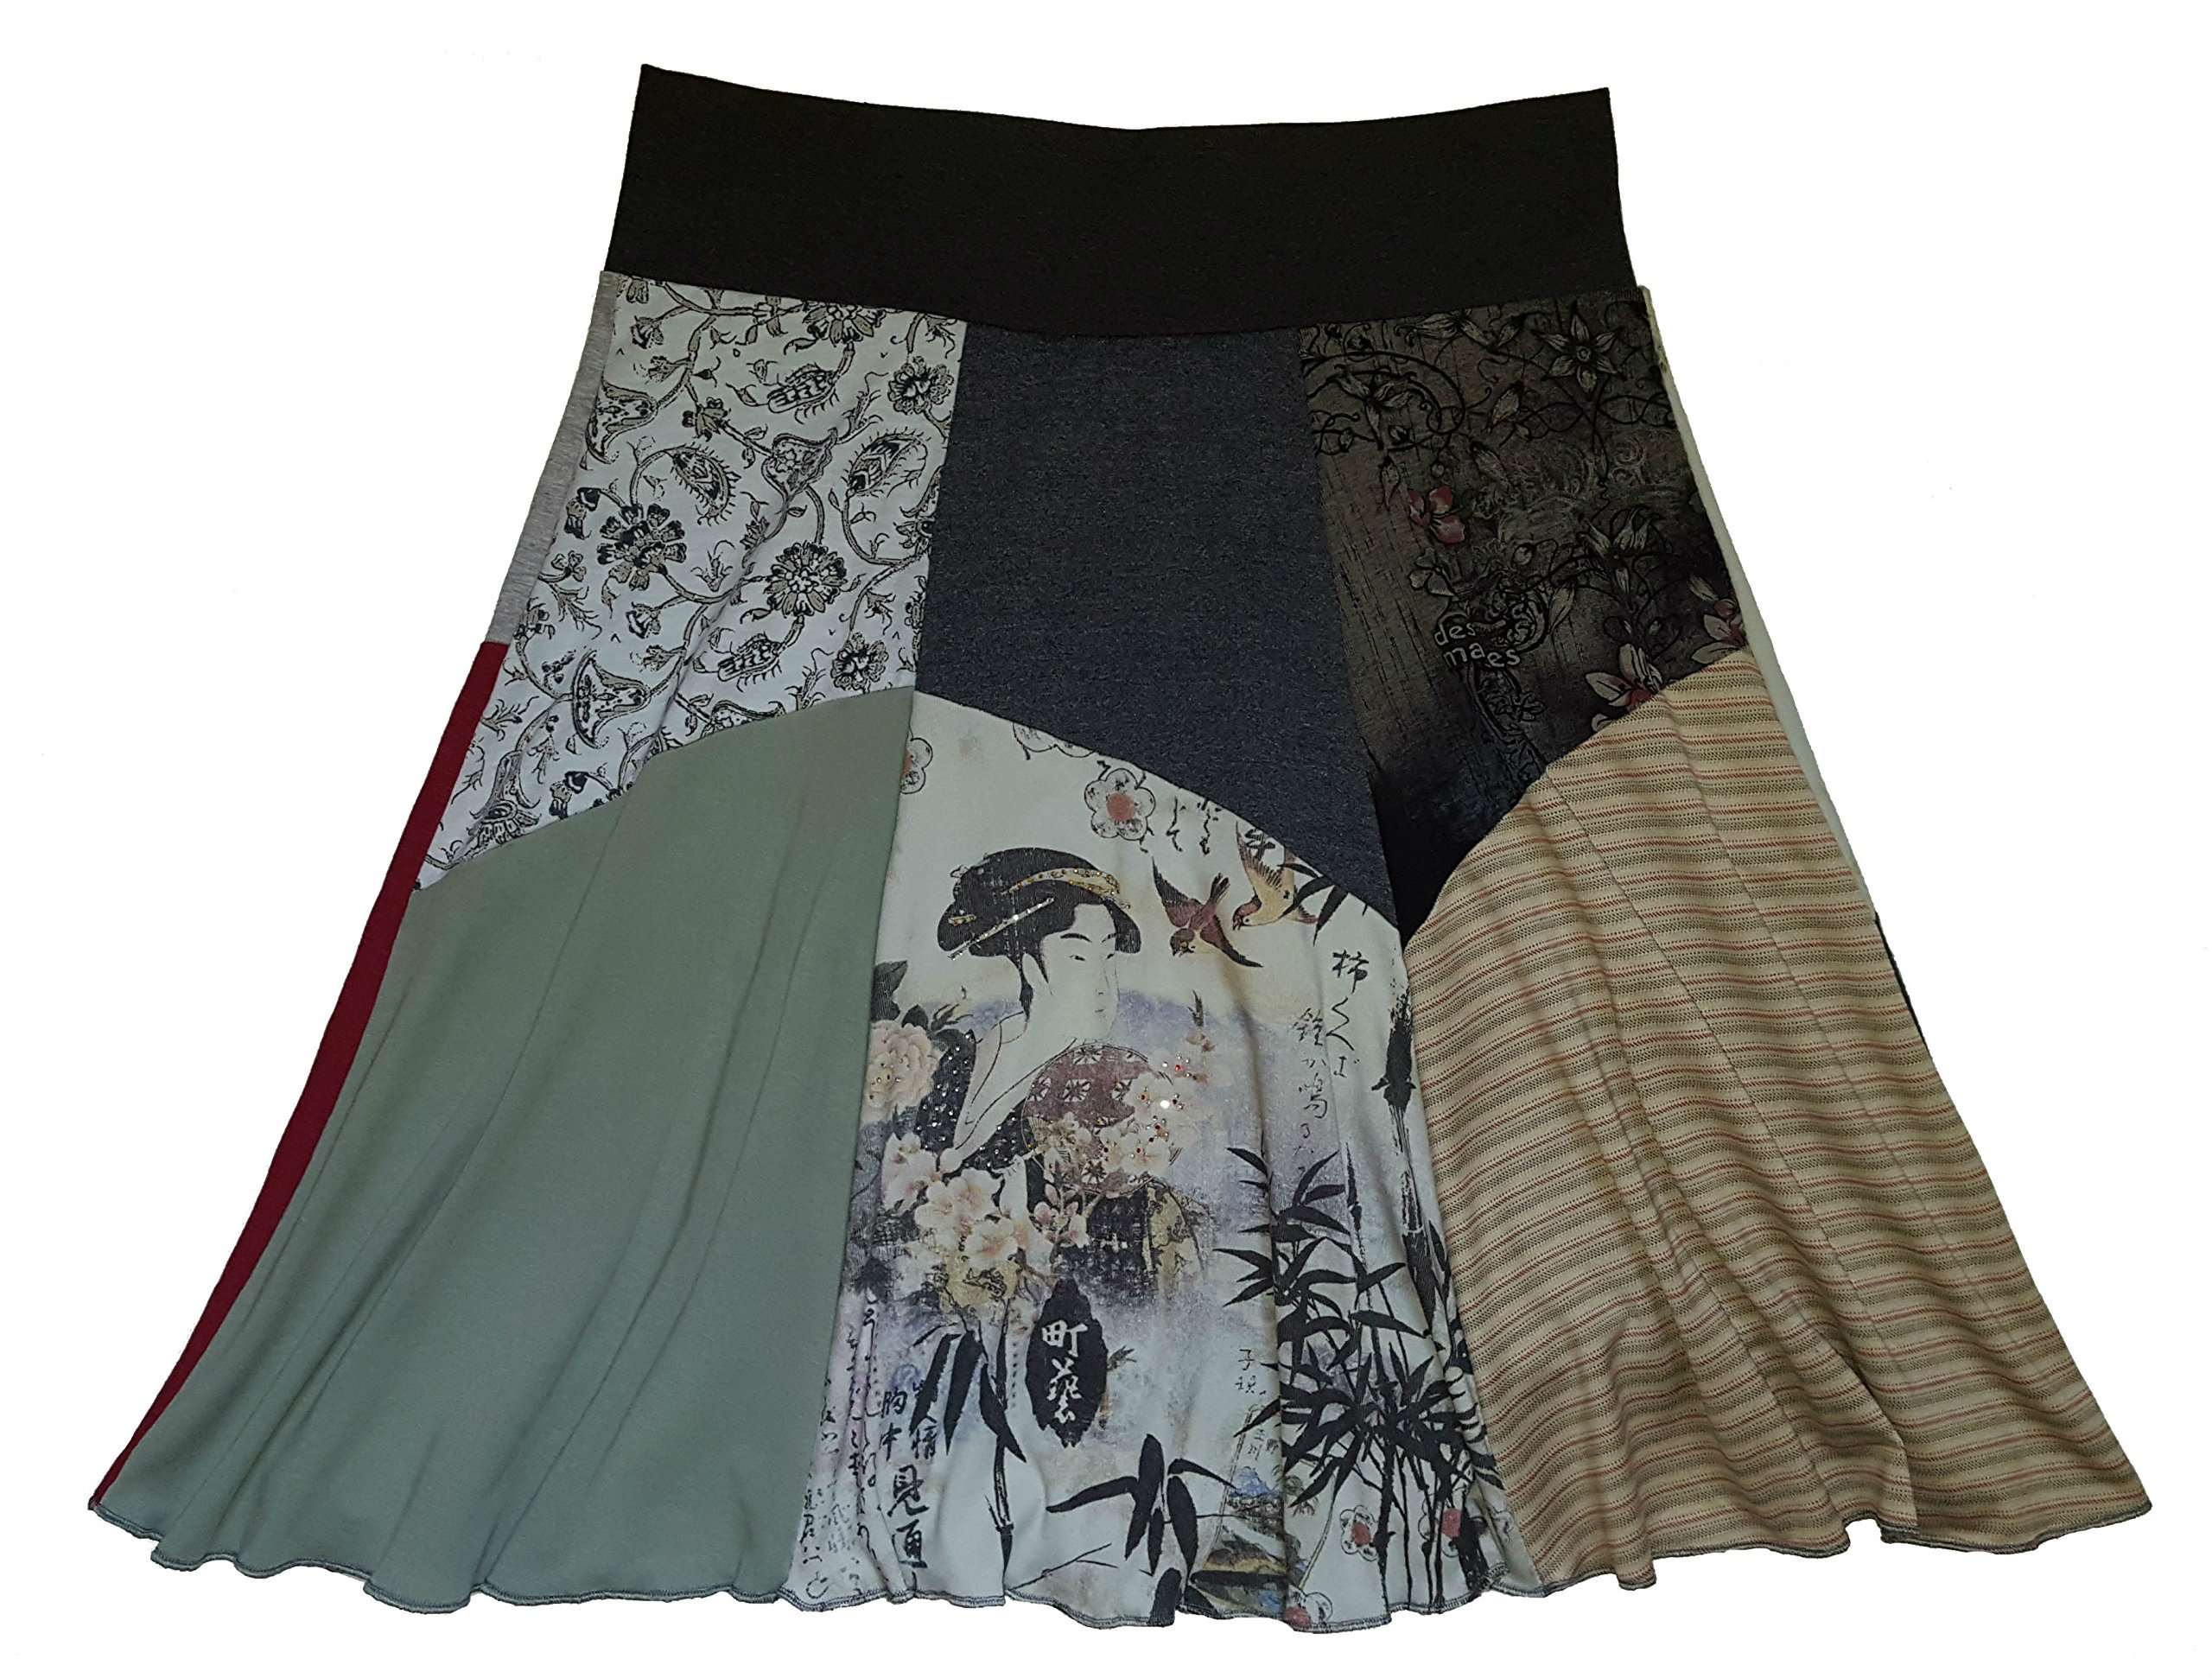 Geisha T-Shirt Skirt Women's Size XL 1X Plus Size Upcycled Hippie Skirt One of a Kind